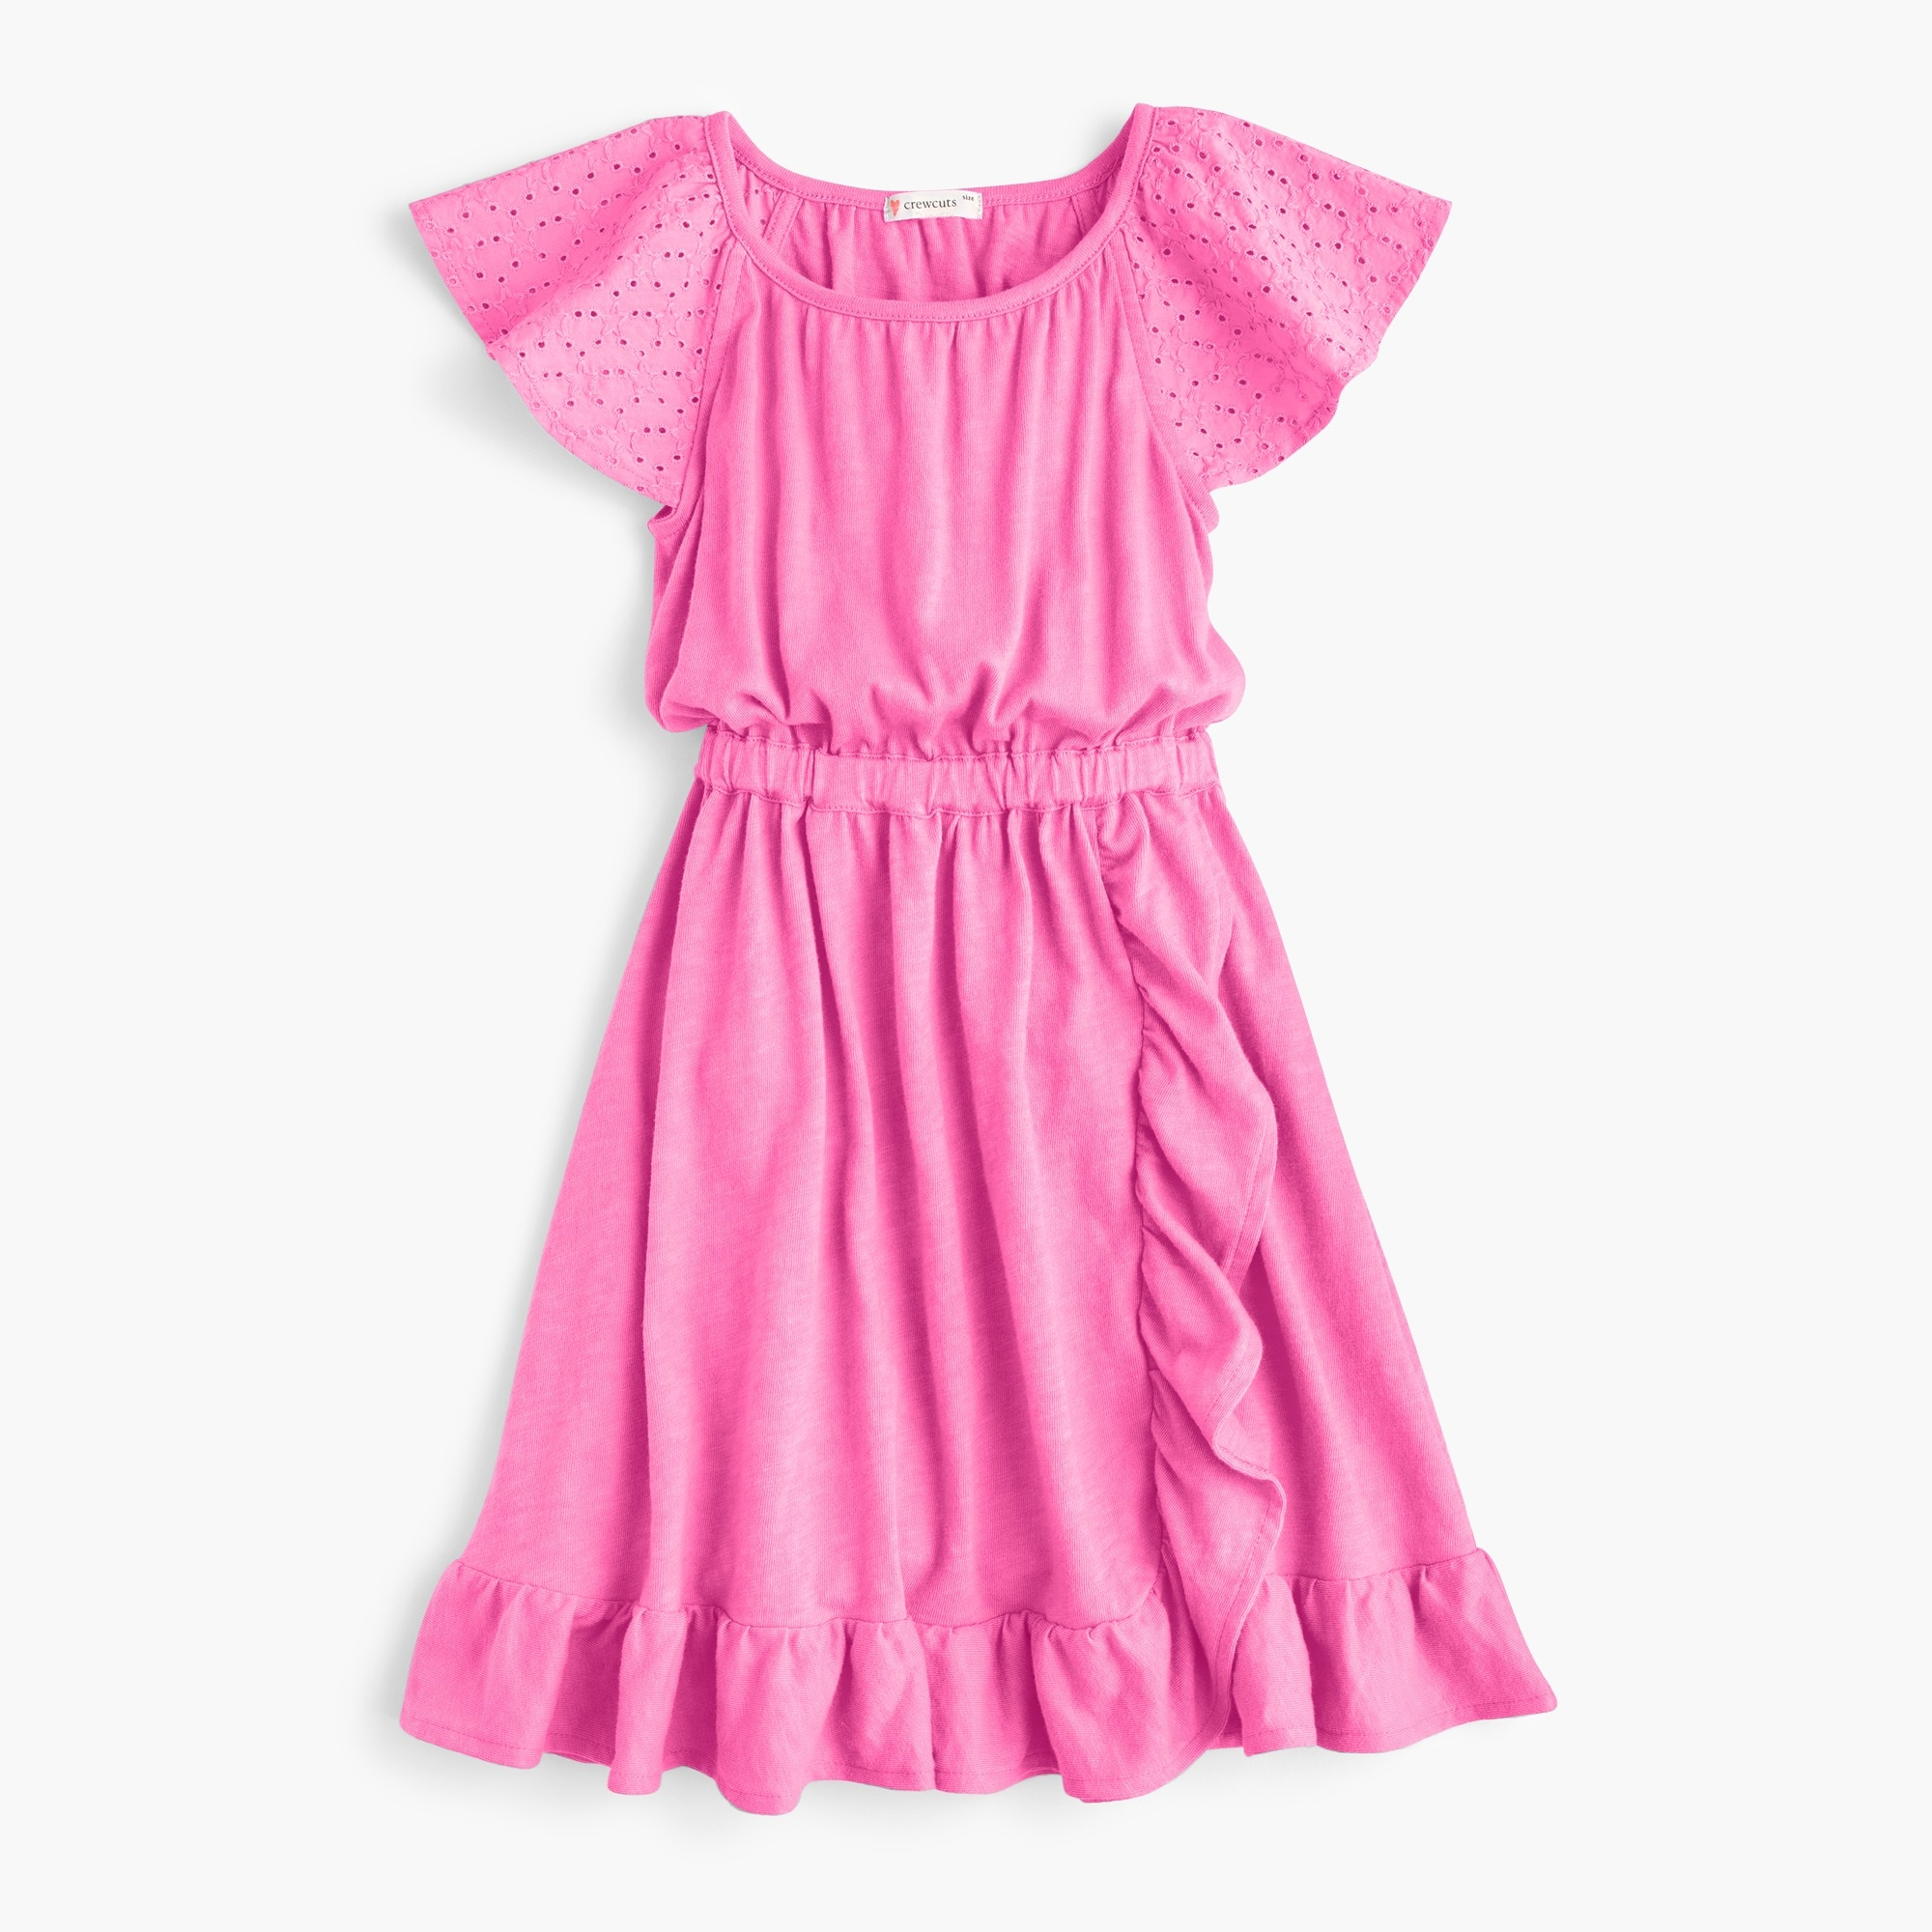 Girls' eyelet-sleeve dress girl new arrivals c